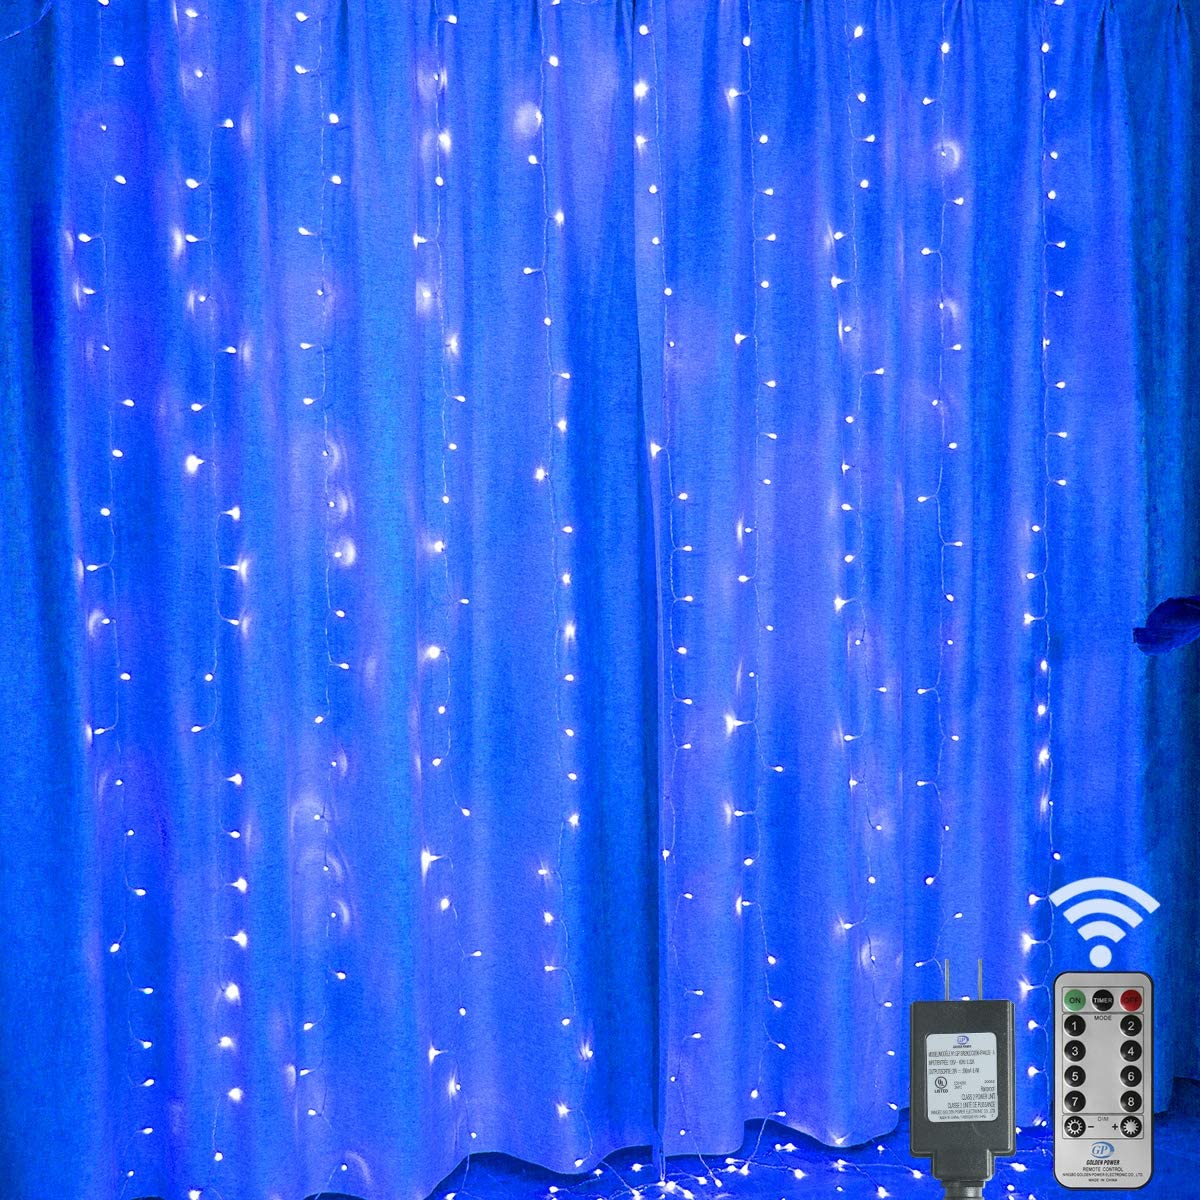 300Leds Window Curtain Lights Plug in,9.8x9.8ft Indoor Backdrop Window lights Connectable Twinkle Lights With Remote Waterfall Hanging Lights Wall Decor for Bedroom,Christmas,Party,Wedding-Blue